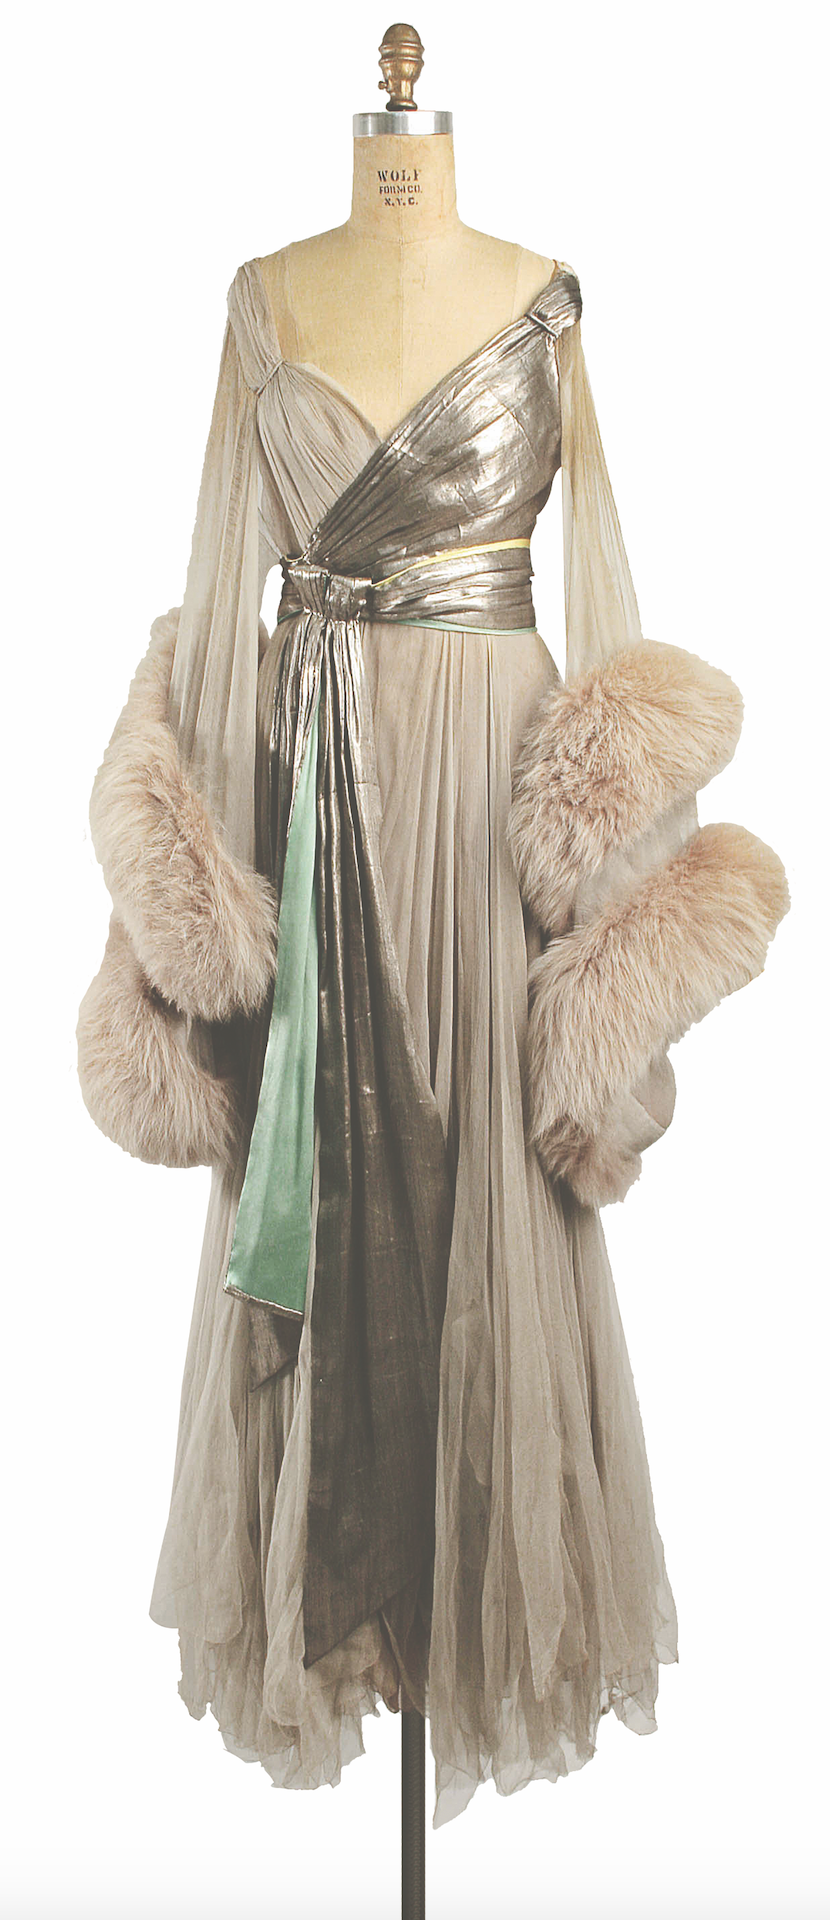 Silk, fur and metallic thread evening dress, c. 1920, by Lucile. The Metropolitan Museum of Art, New York. Gift of Irene Castle (Mrs Gerorge Enzinger), 1947 (CI47.57.1)